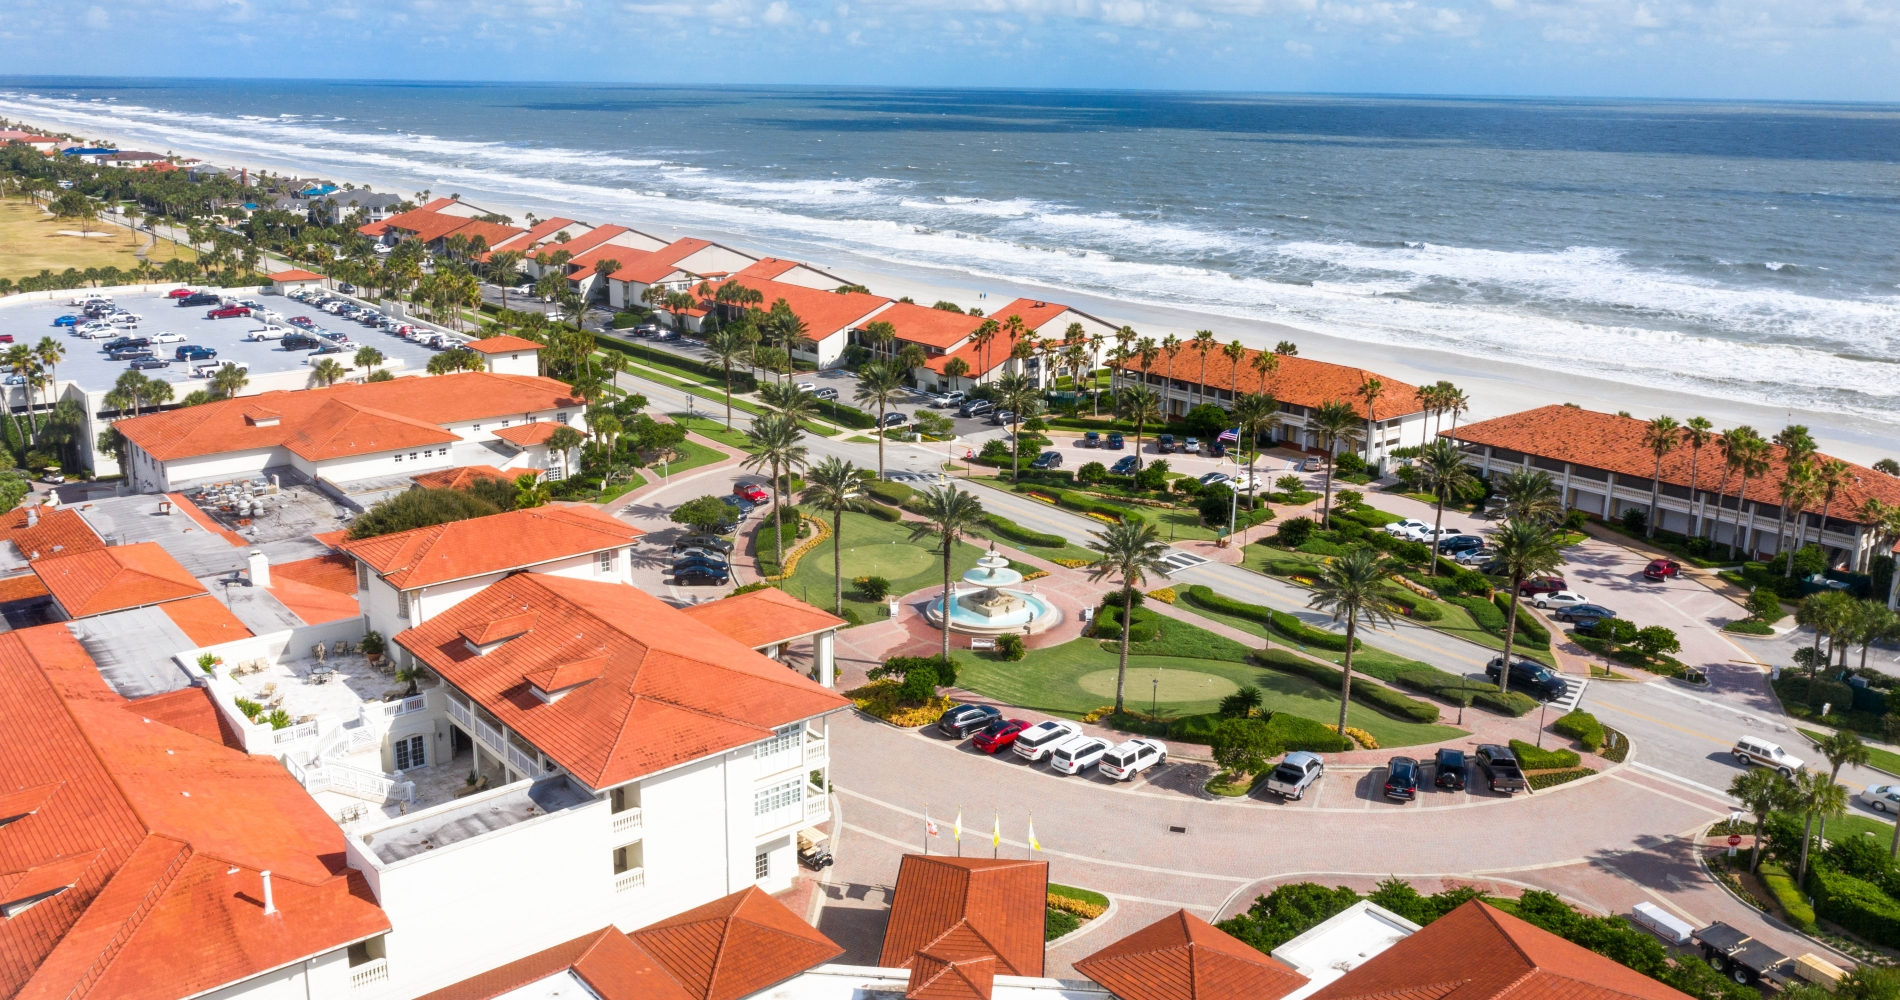 aerial shot of the inn and the beach